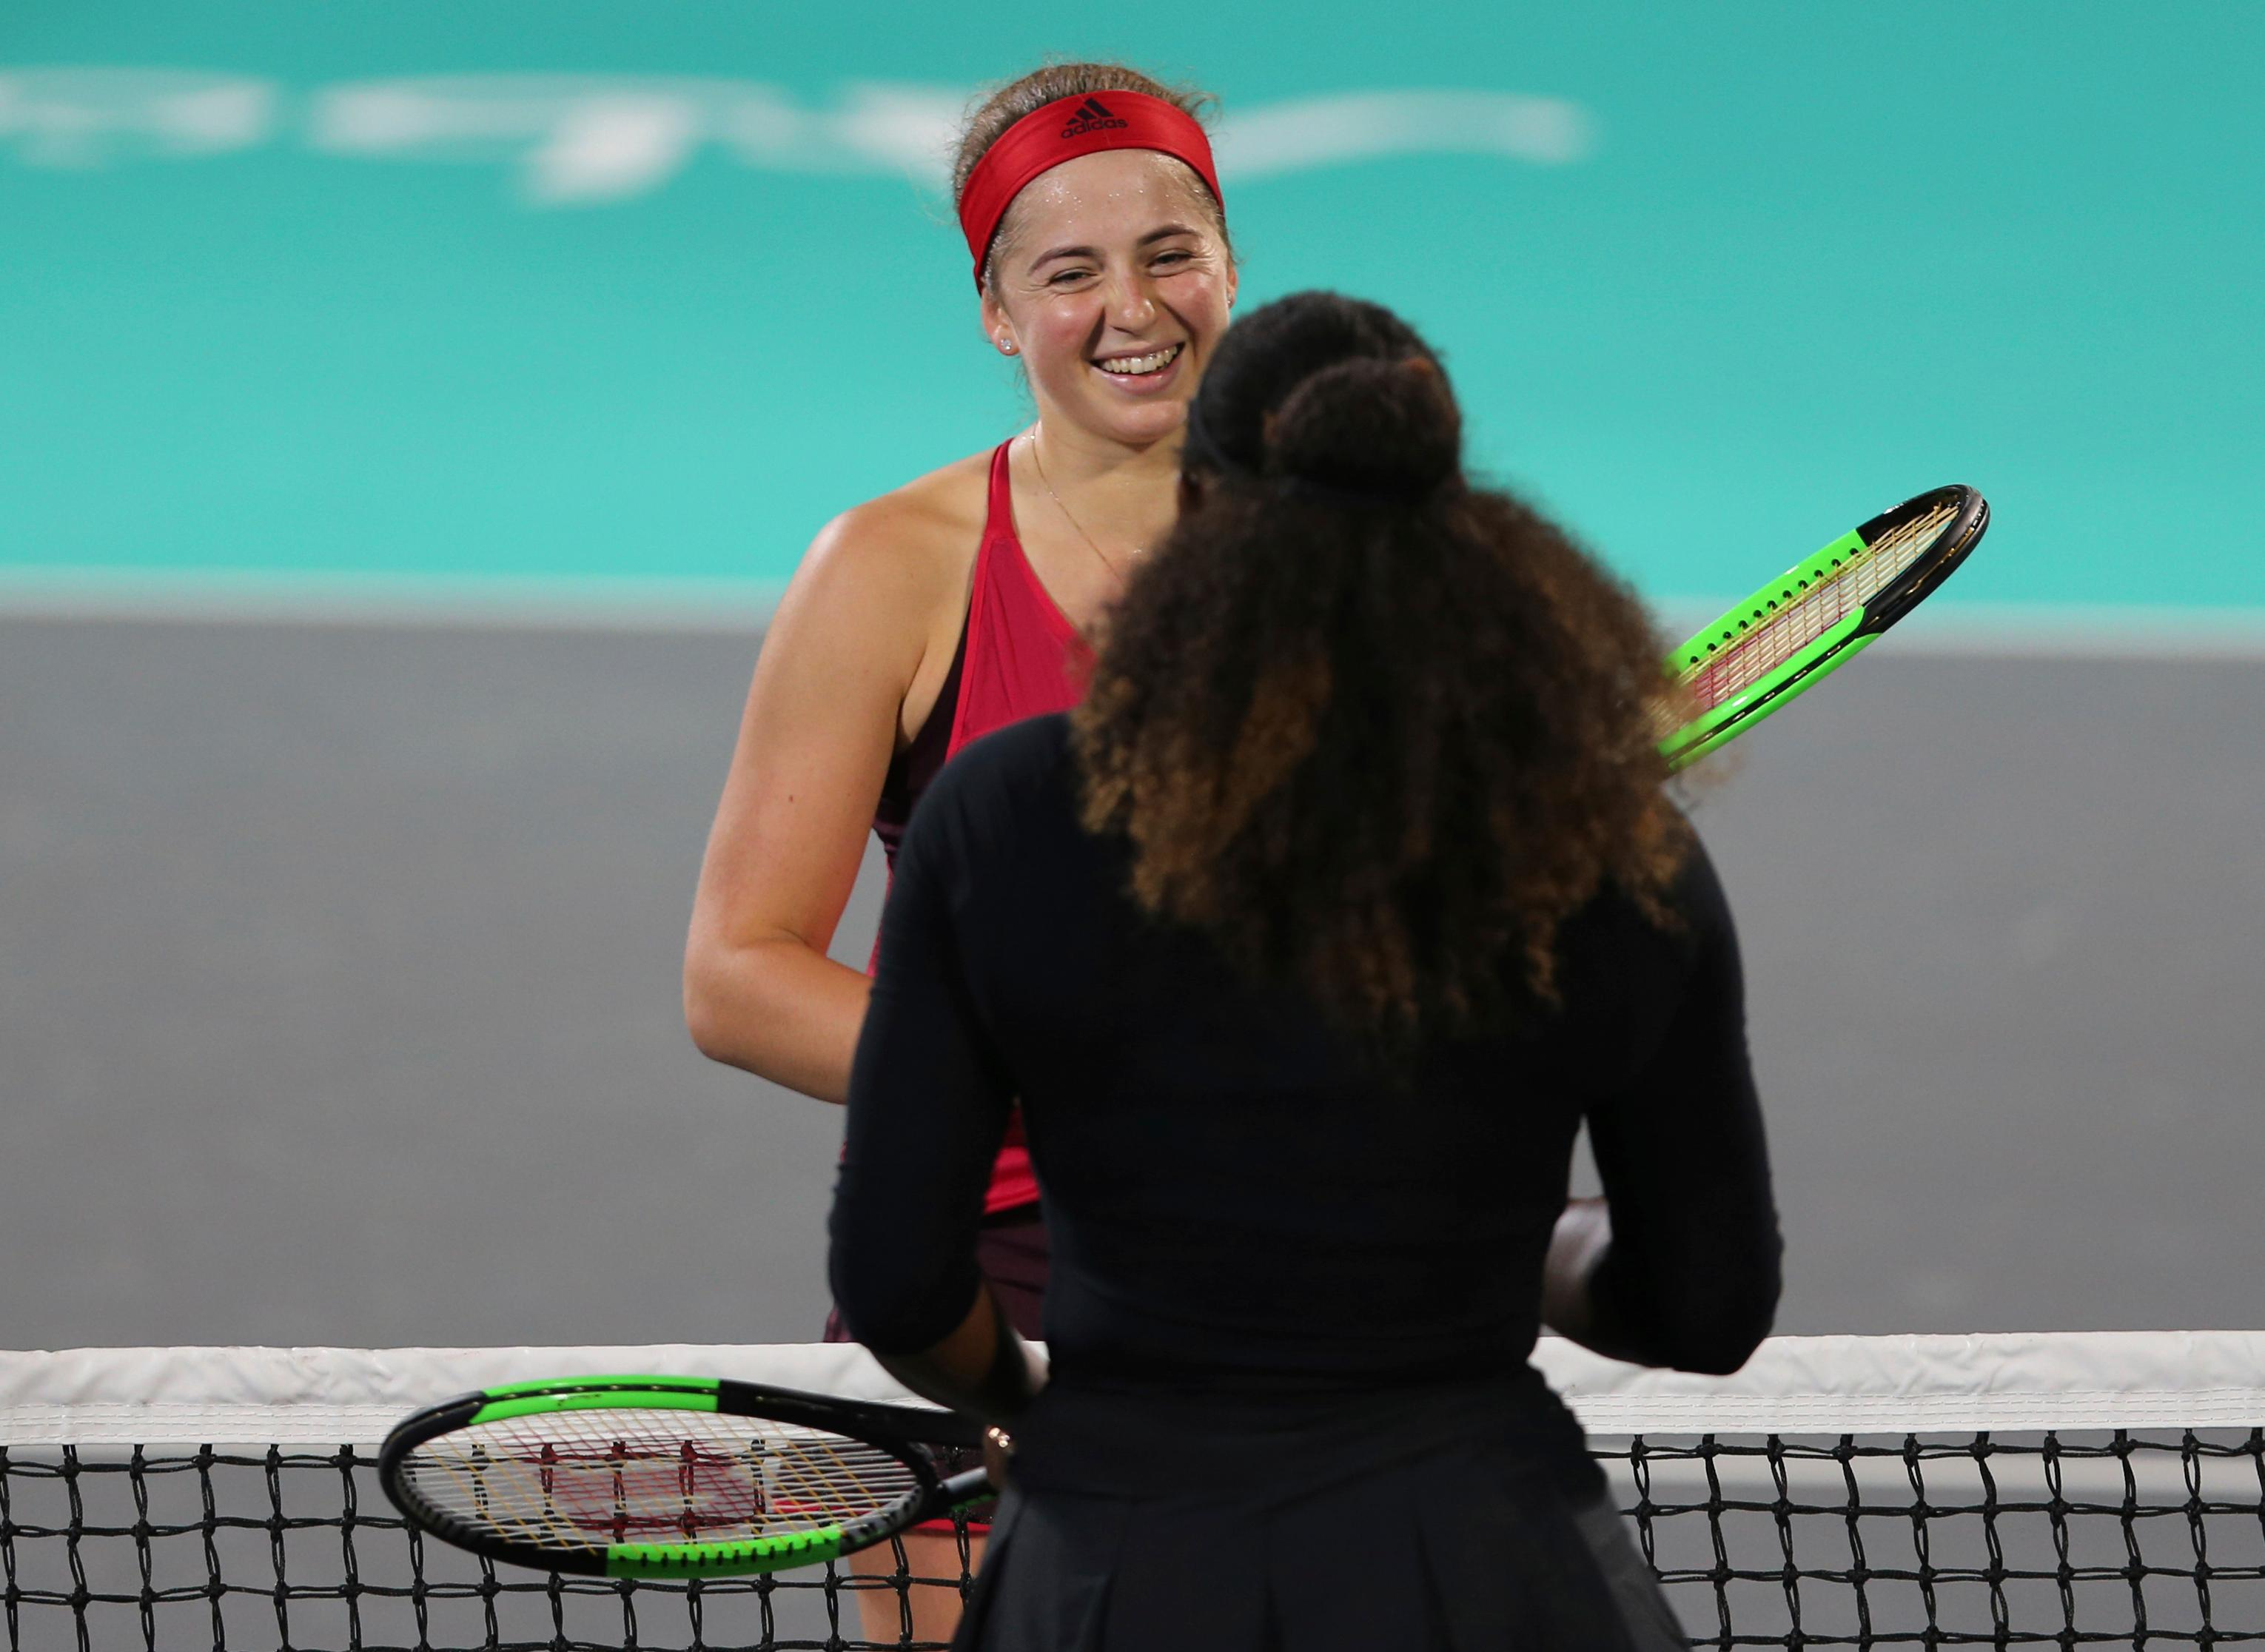 Jelena Ostapenko, of Latvia, celebrates after beating Serena Williams, foreground, of the U.S., in an exhibition match during the final day of the Mubadala World Tennis Championship in Abu Dhabi, United Arab Emirates, Saturday, Dec. 30, 2017. (AP Photo/Kamran Jebreili)